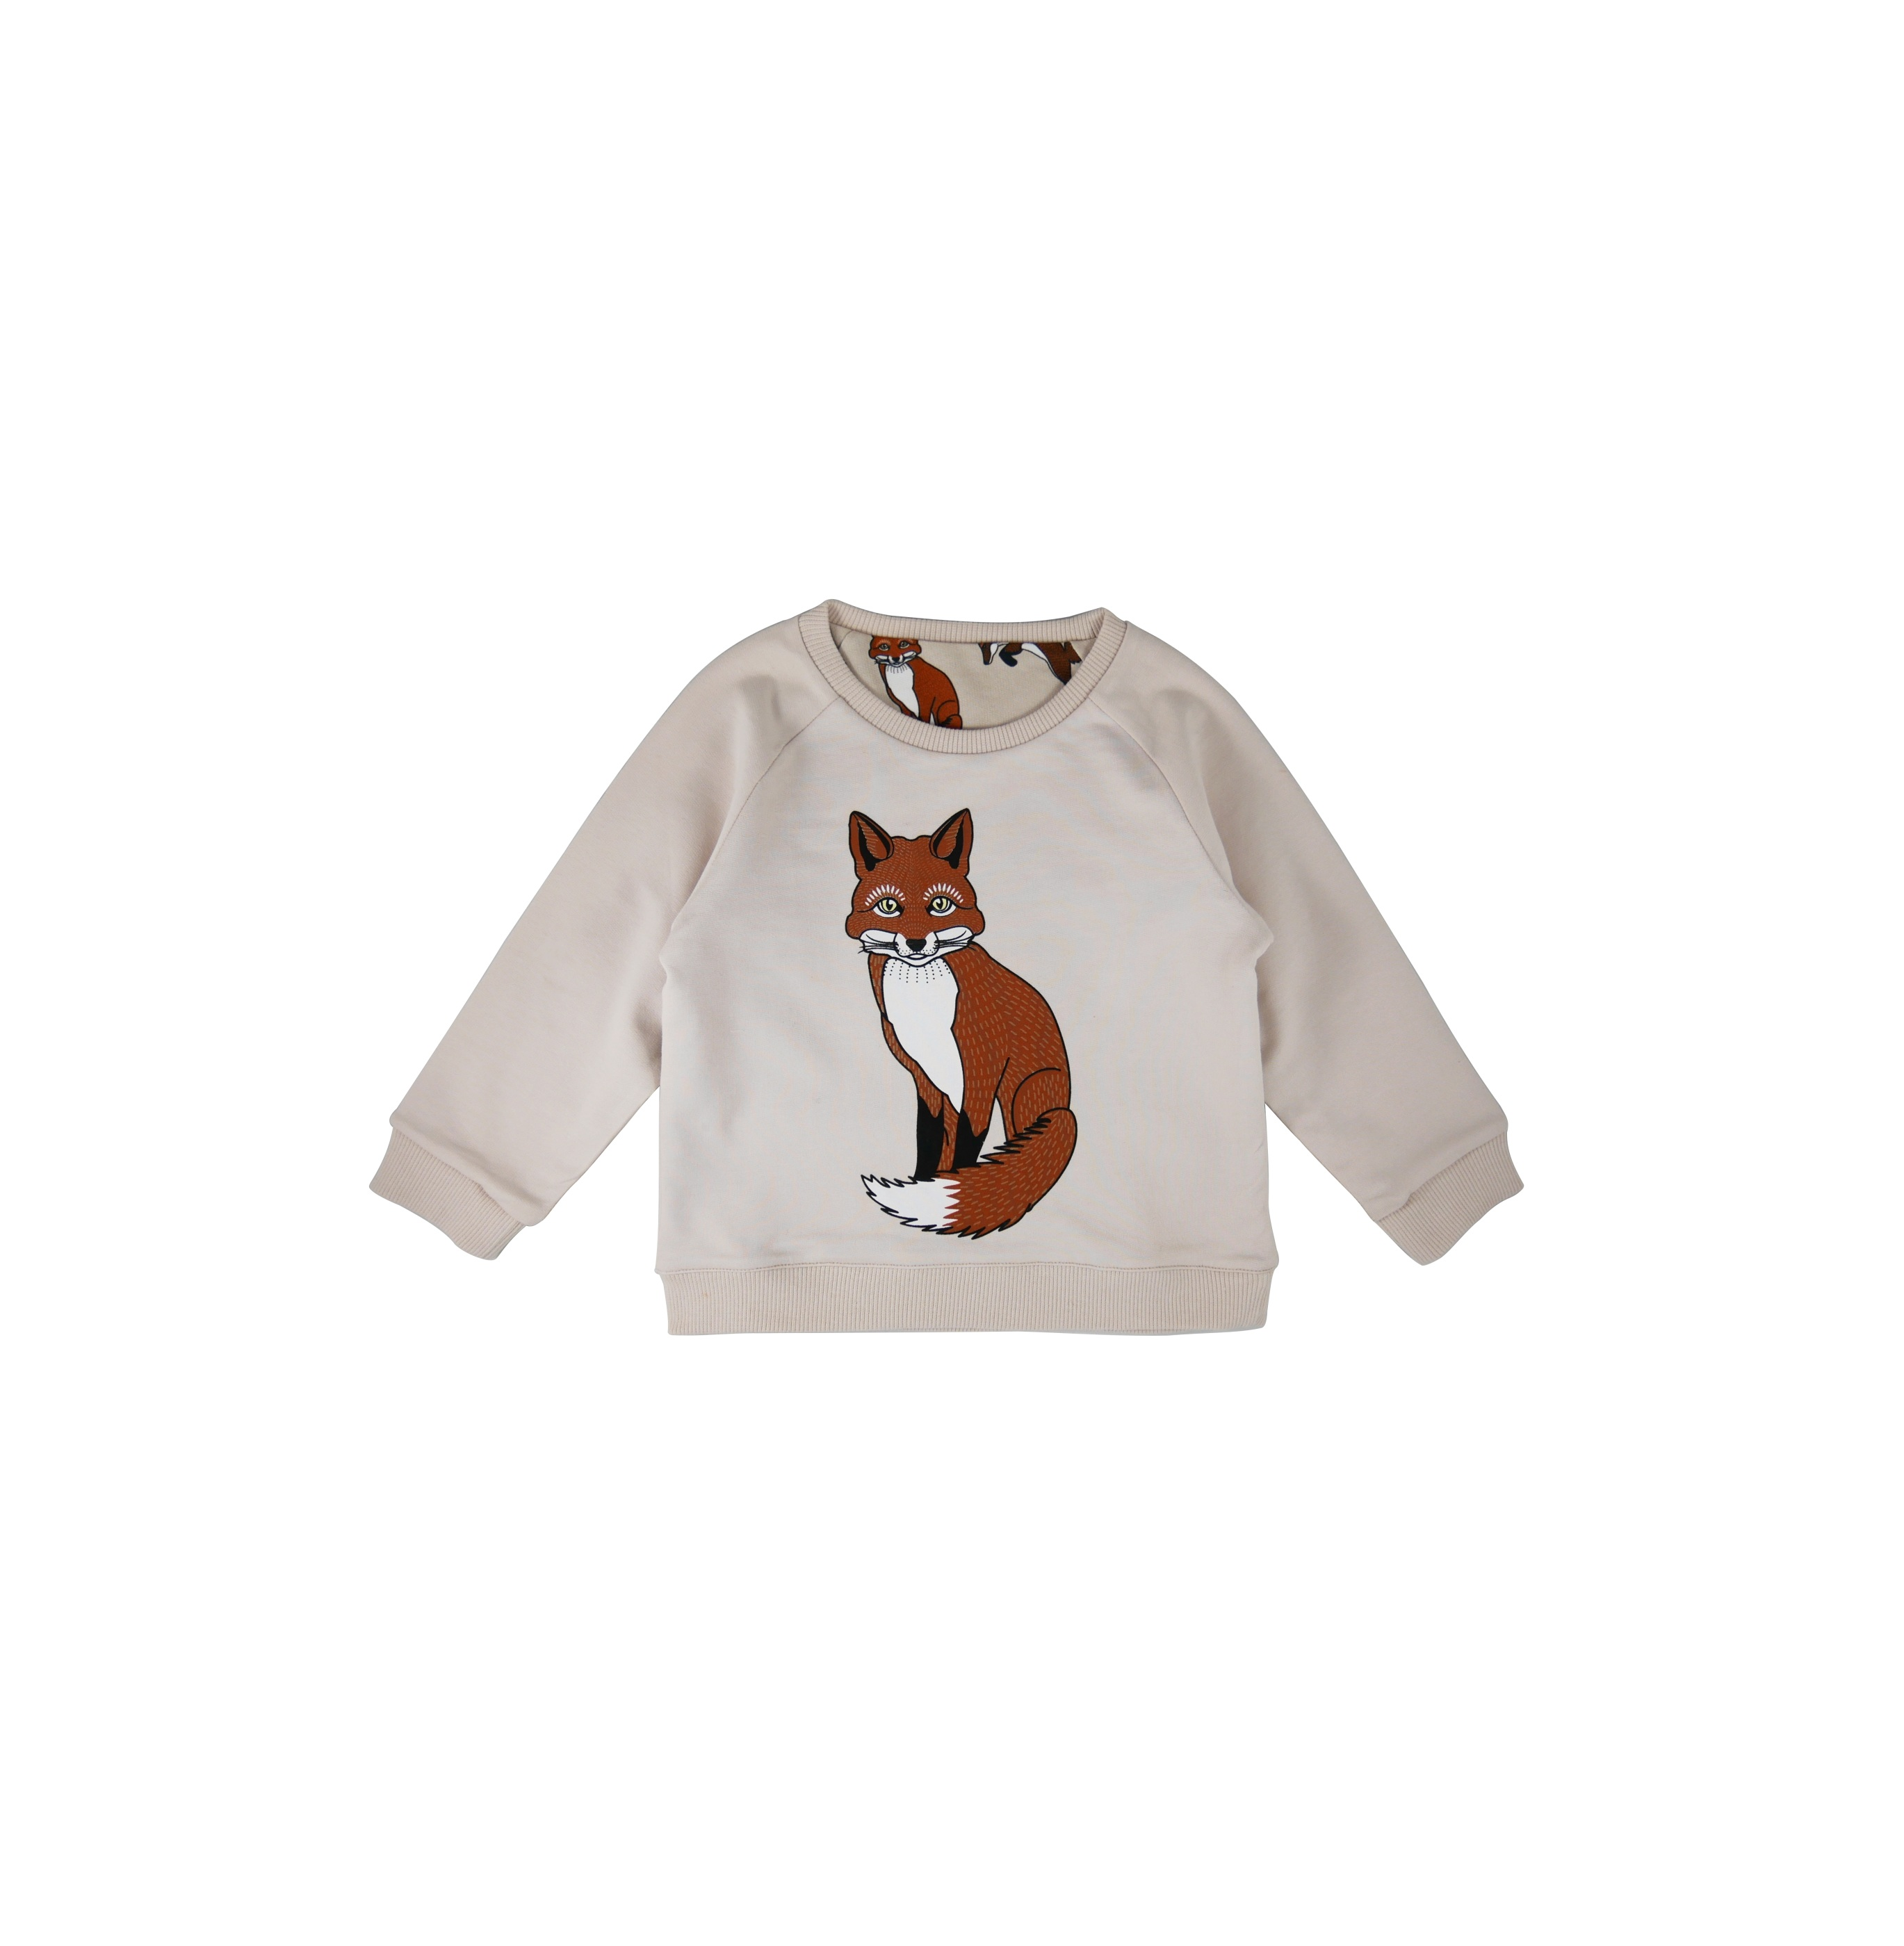 Reversible sweatshirt Fox Solitary side first